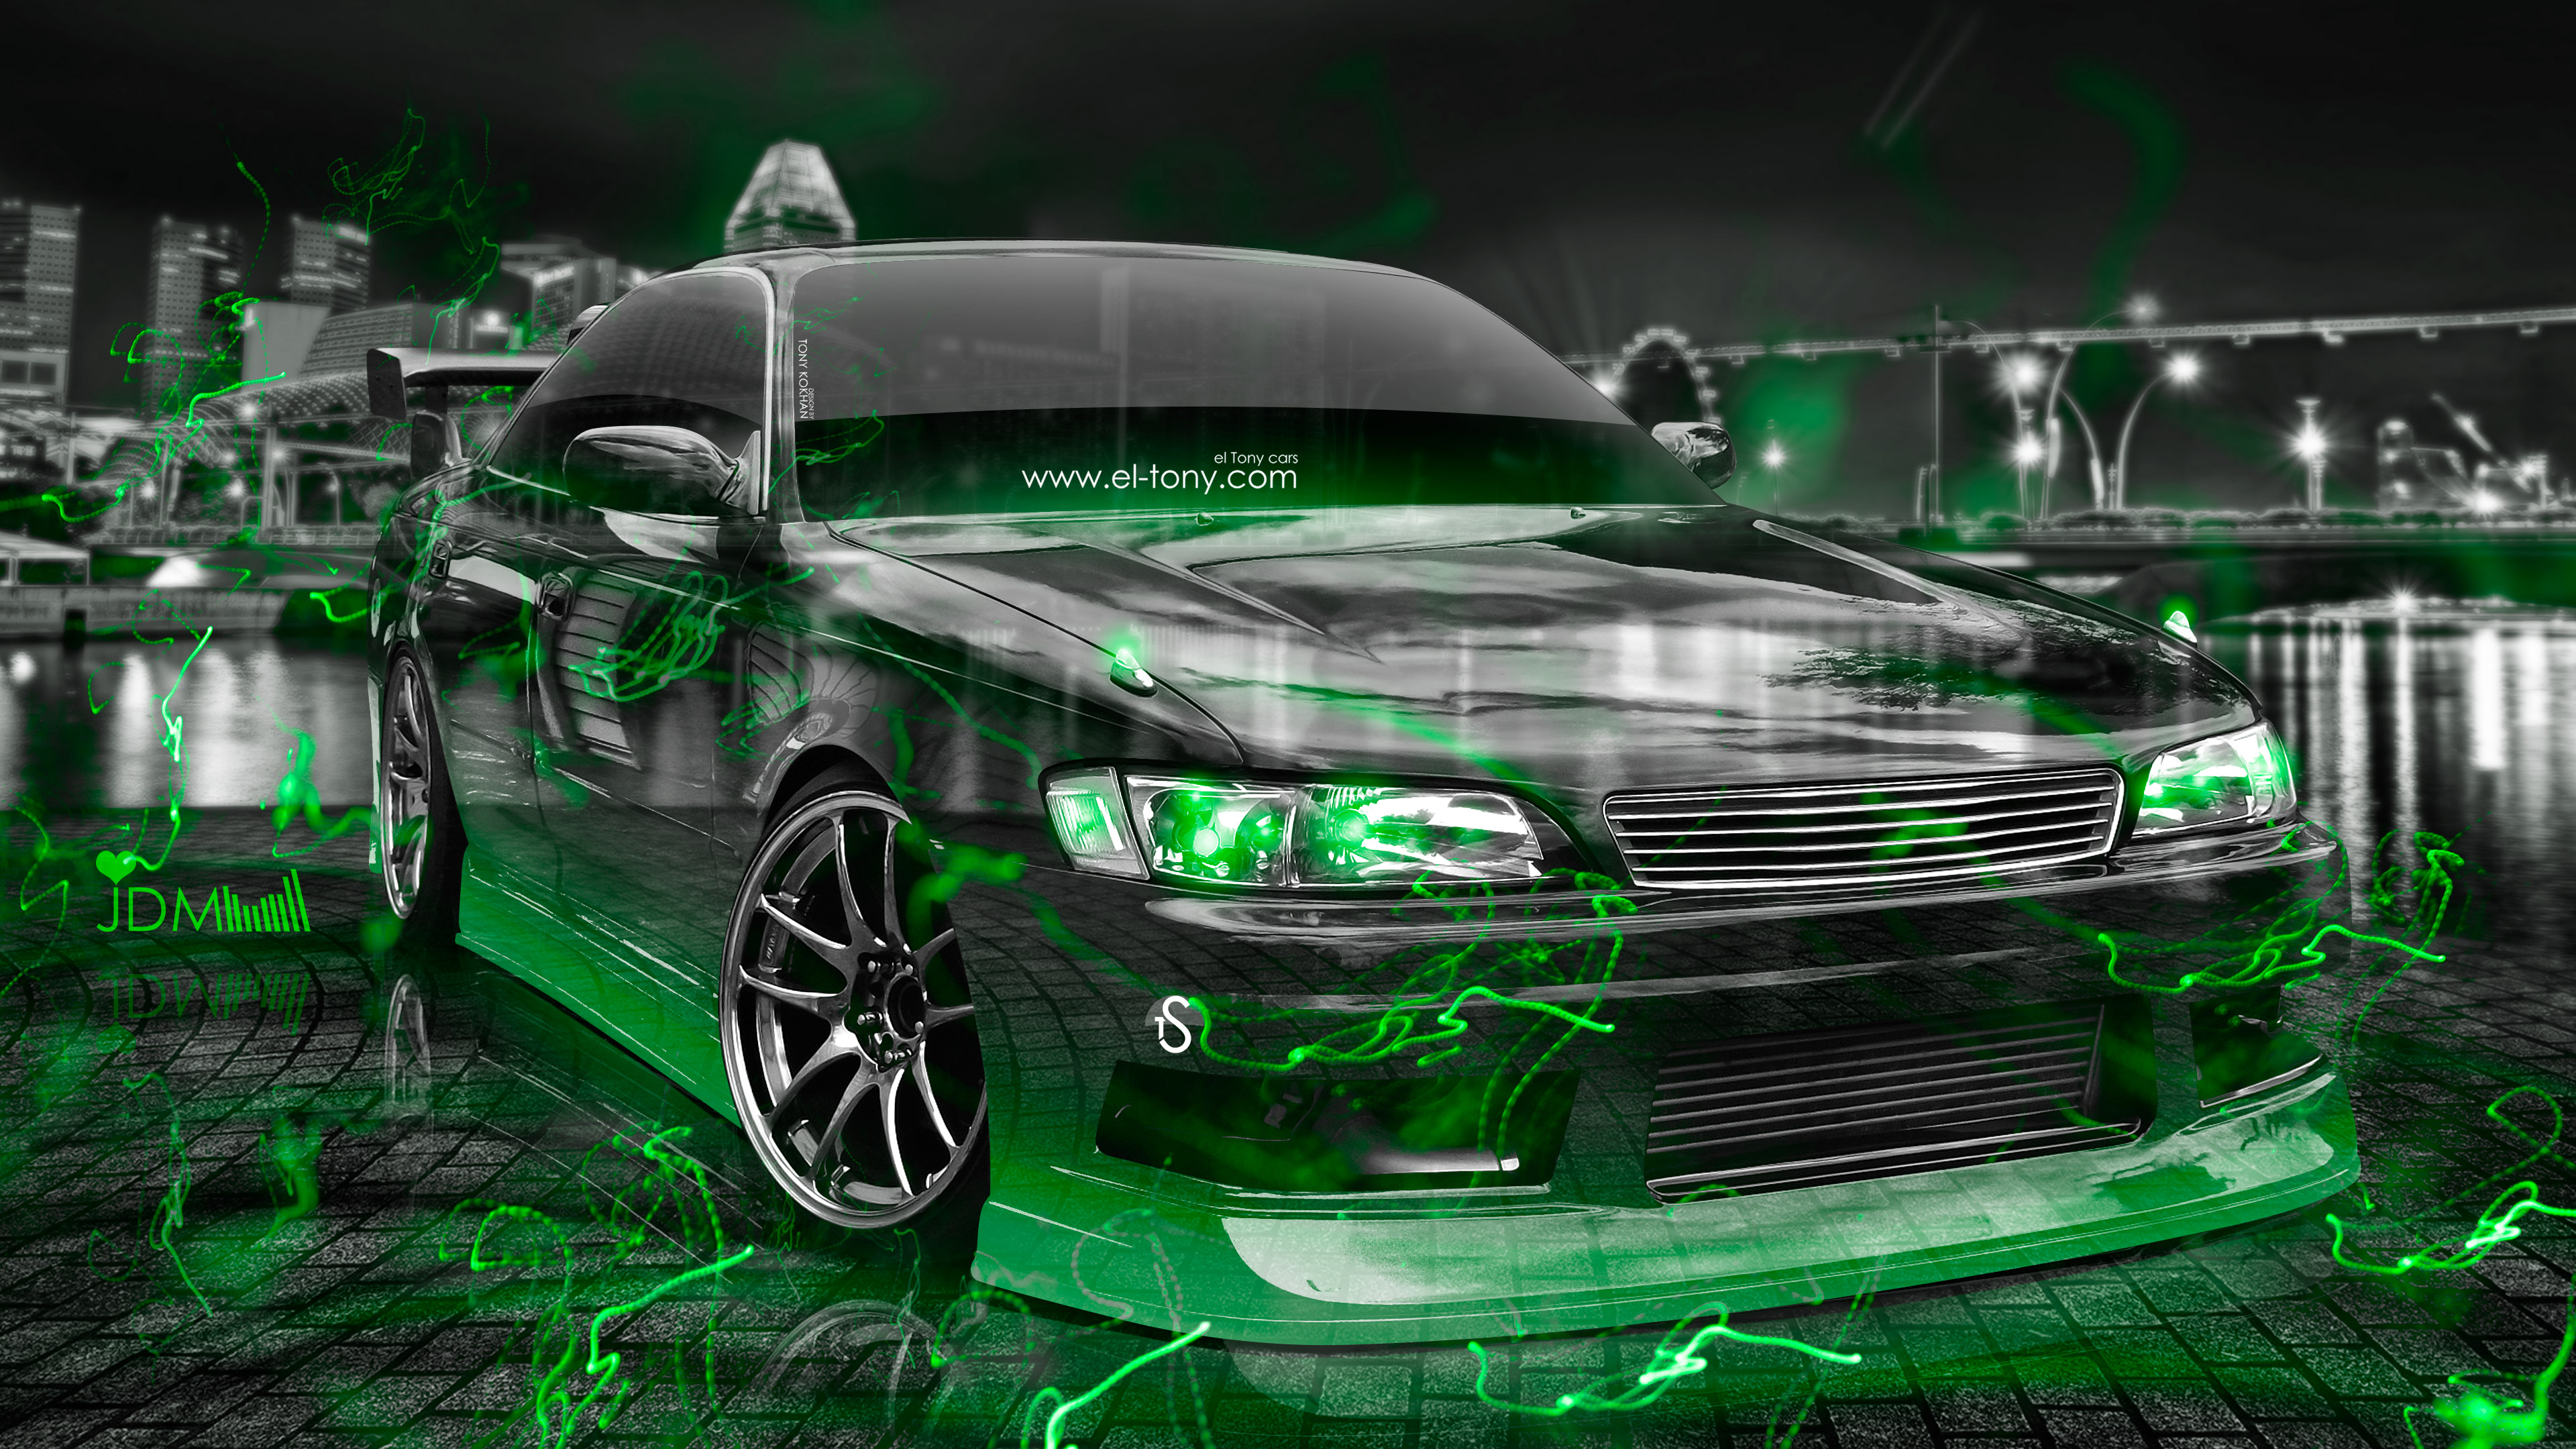 Beau Toyota Mark2 JZX90 JDM Tuning 3D Crystal City